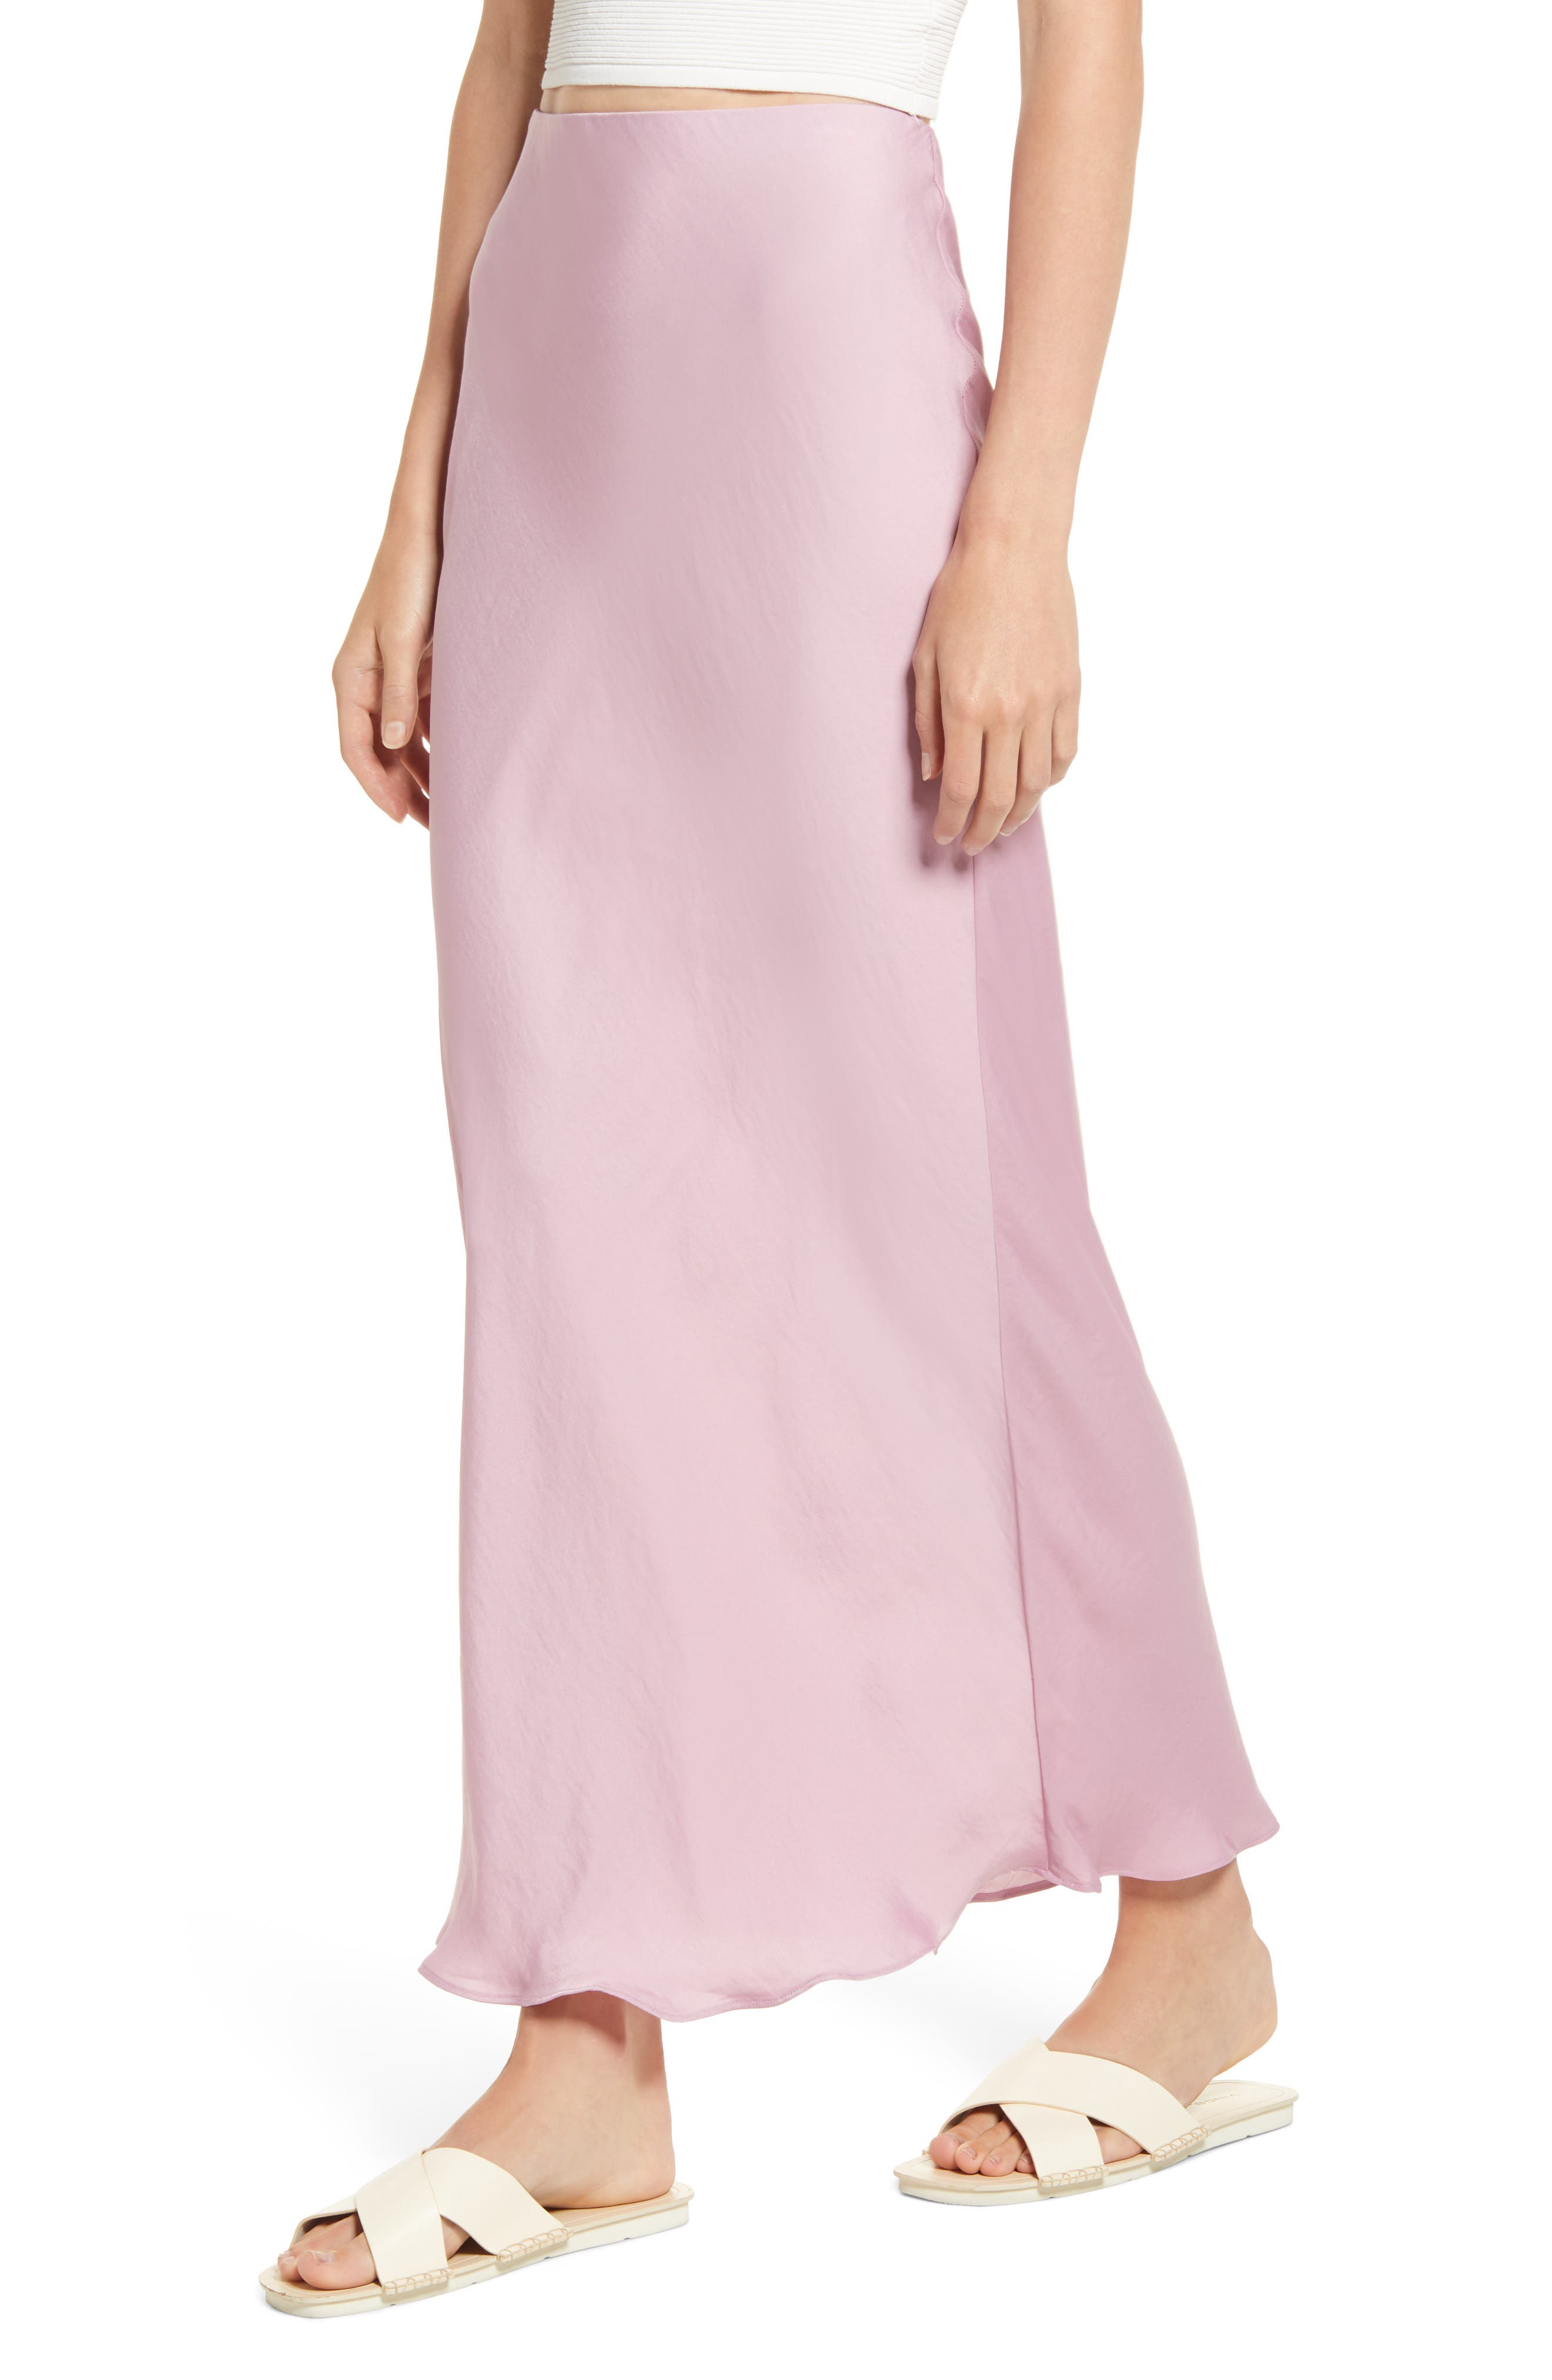 Prepare to blush in this rose-colored slip skirt made of smooth-satiny fabric that\\\'s ideal for date night. Style Name: Free People Monterey Solid Slip Skirt. Style Number: 6099261. Available in stores.